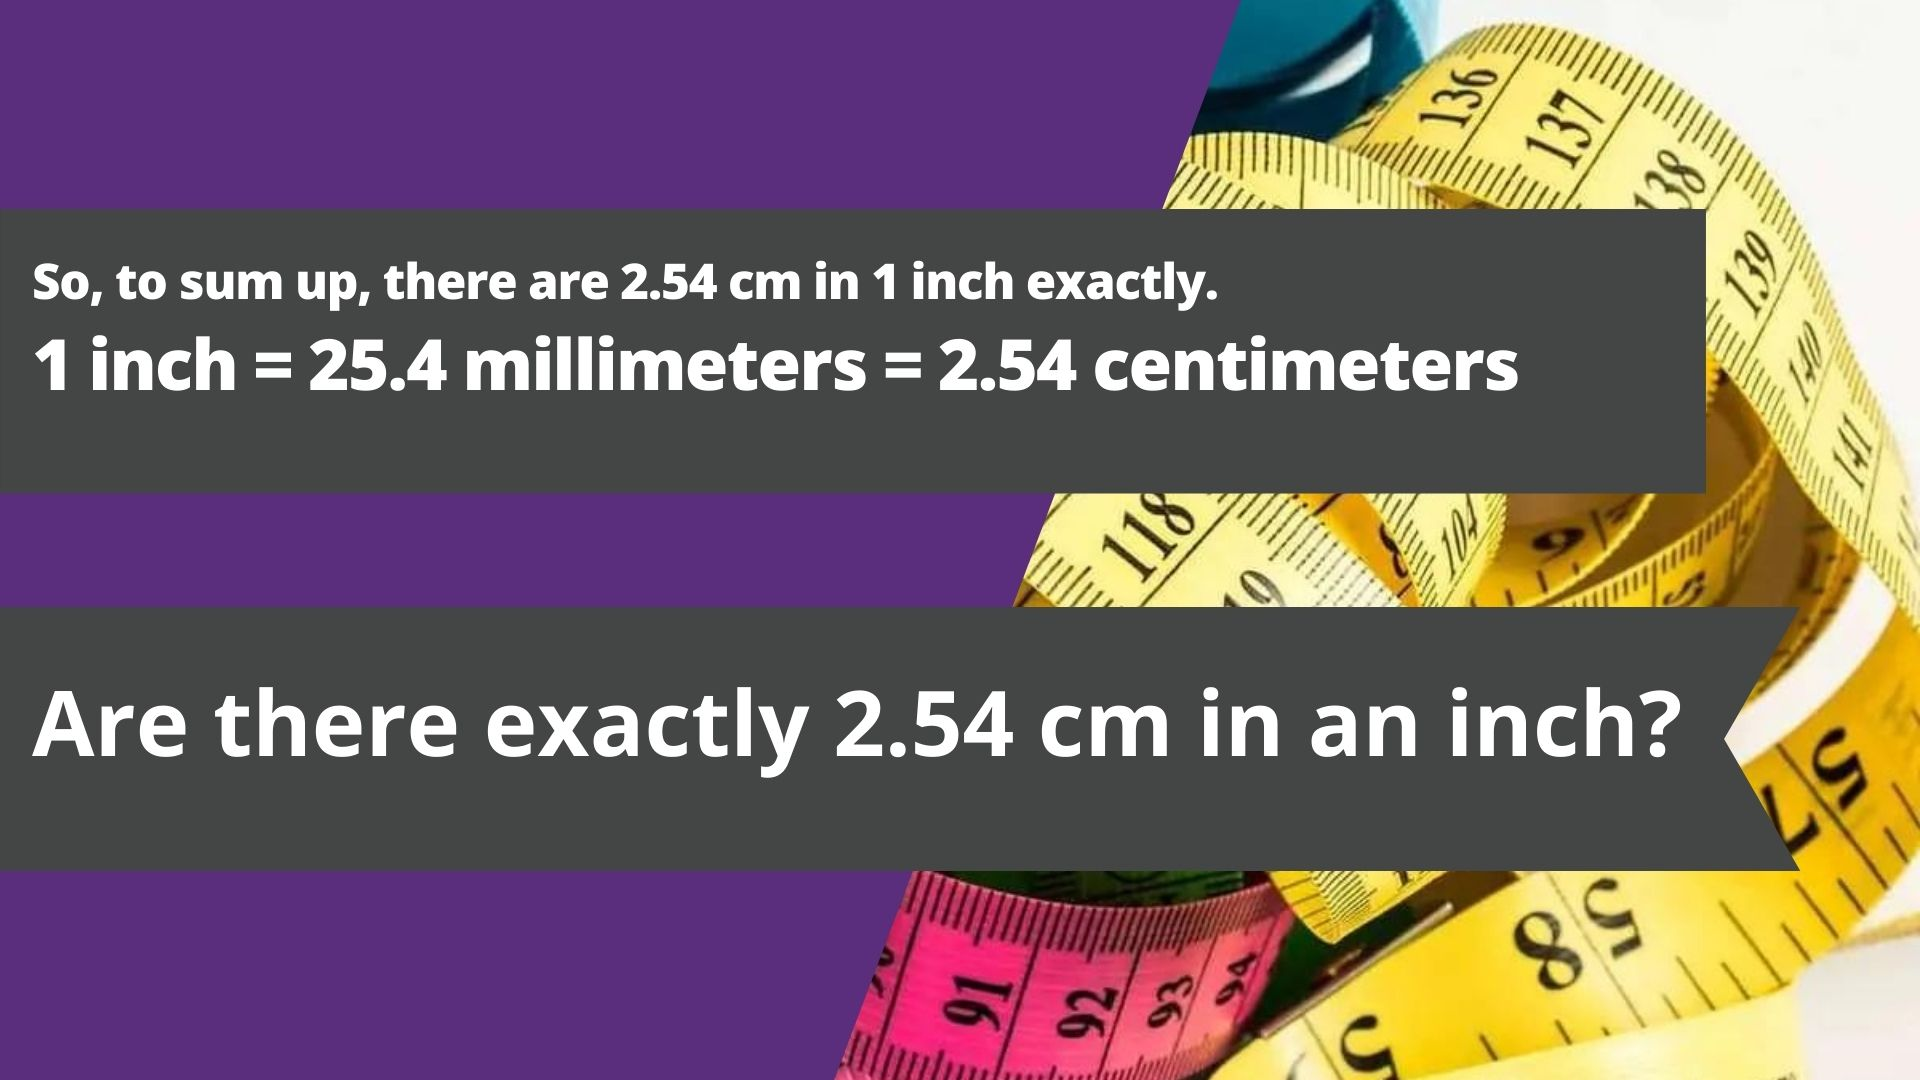 Are there exactly 2.54 cm in an inch?